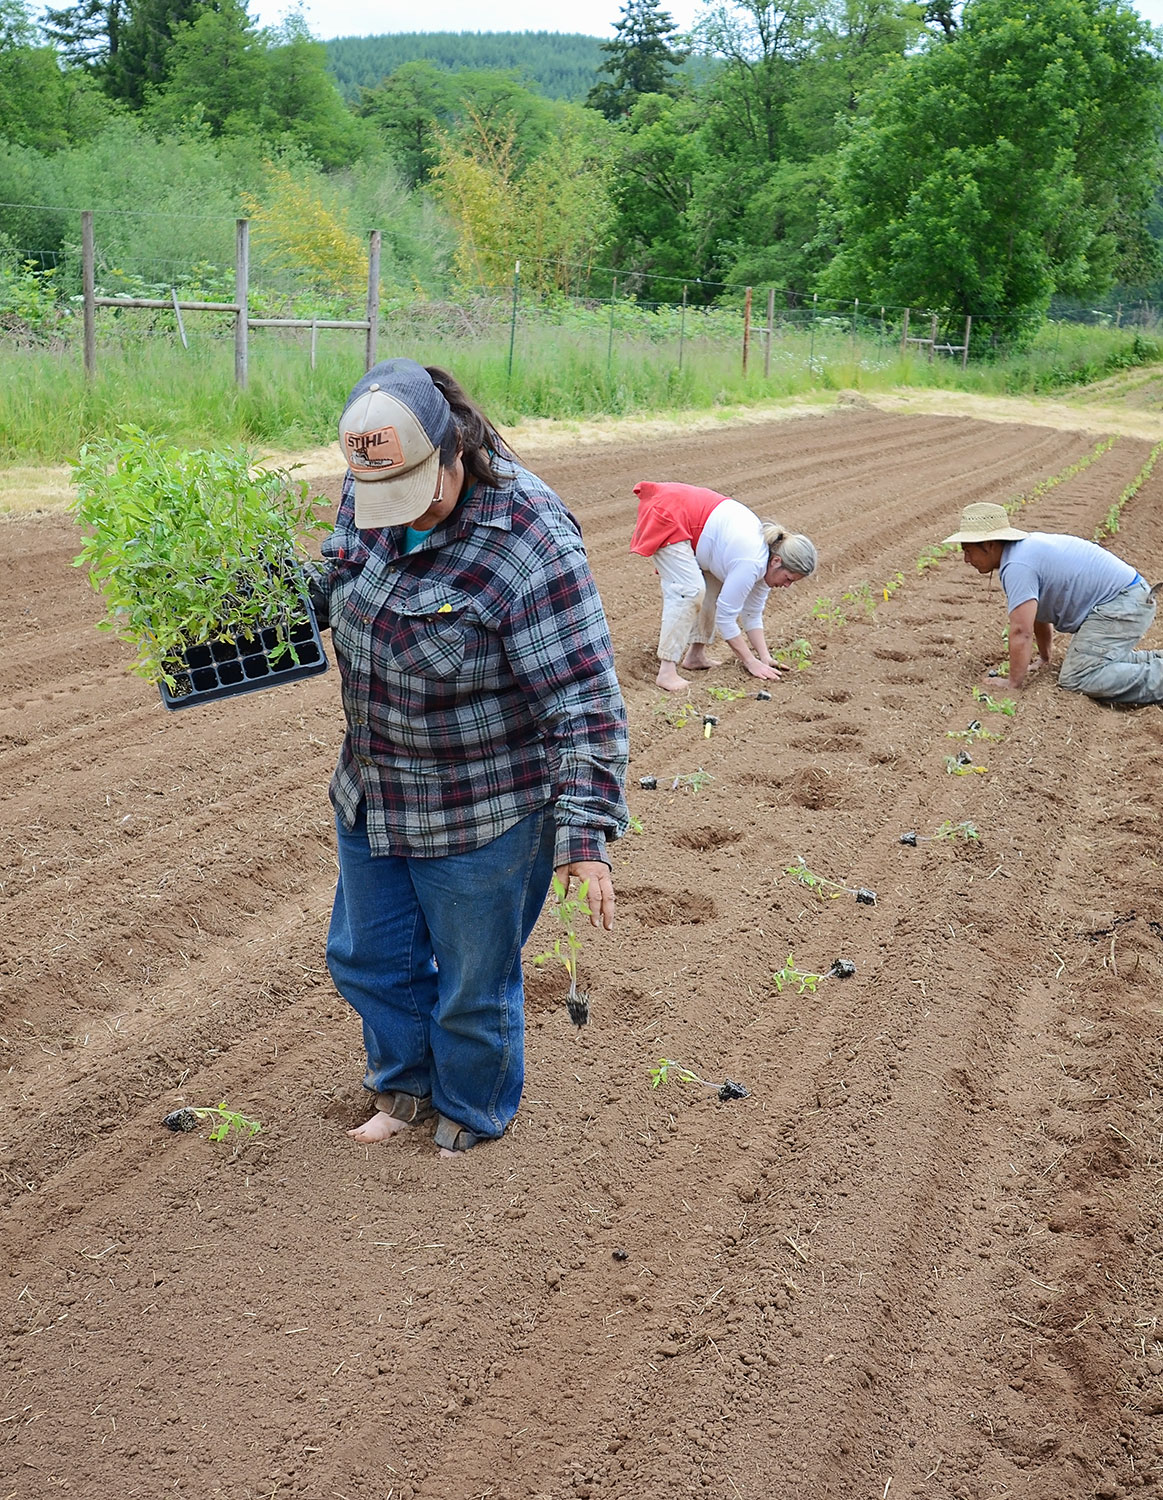 Planting-Tomatoes-(by-hand)-(10).jpg